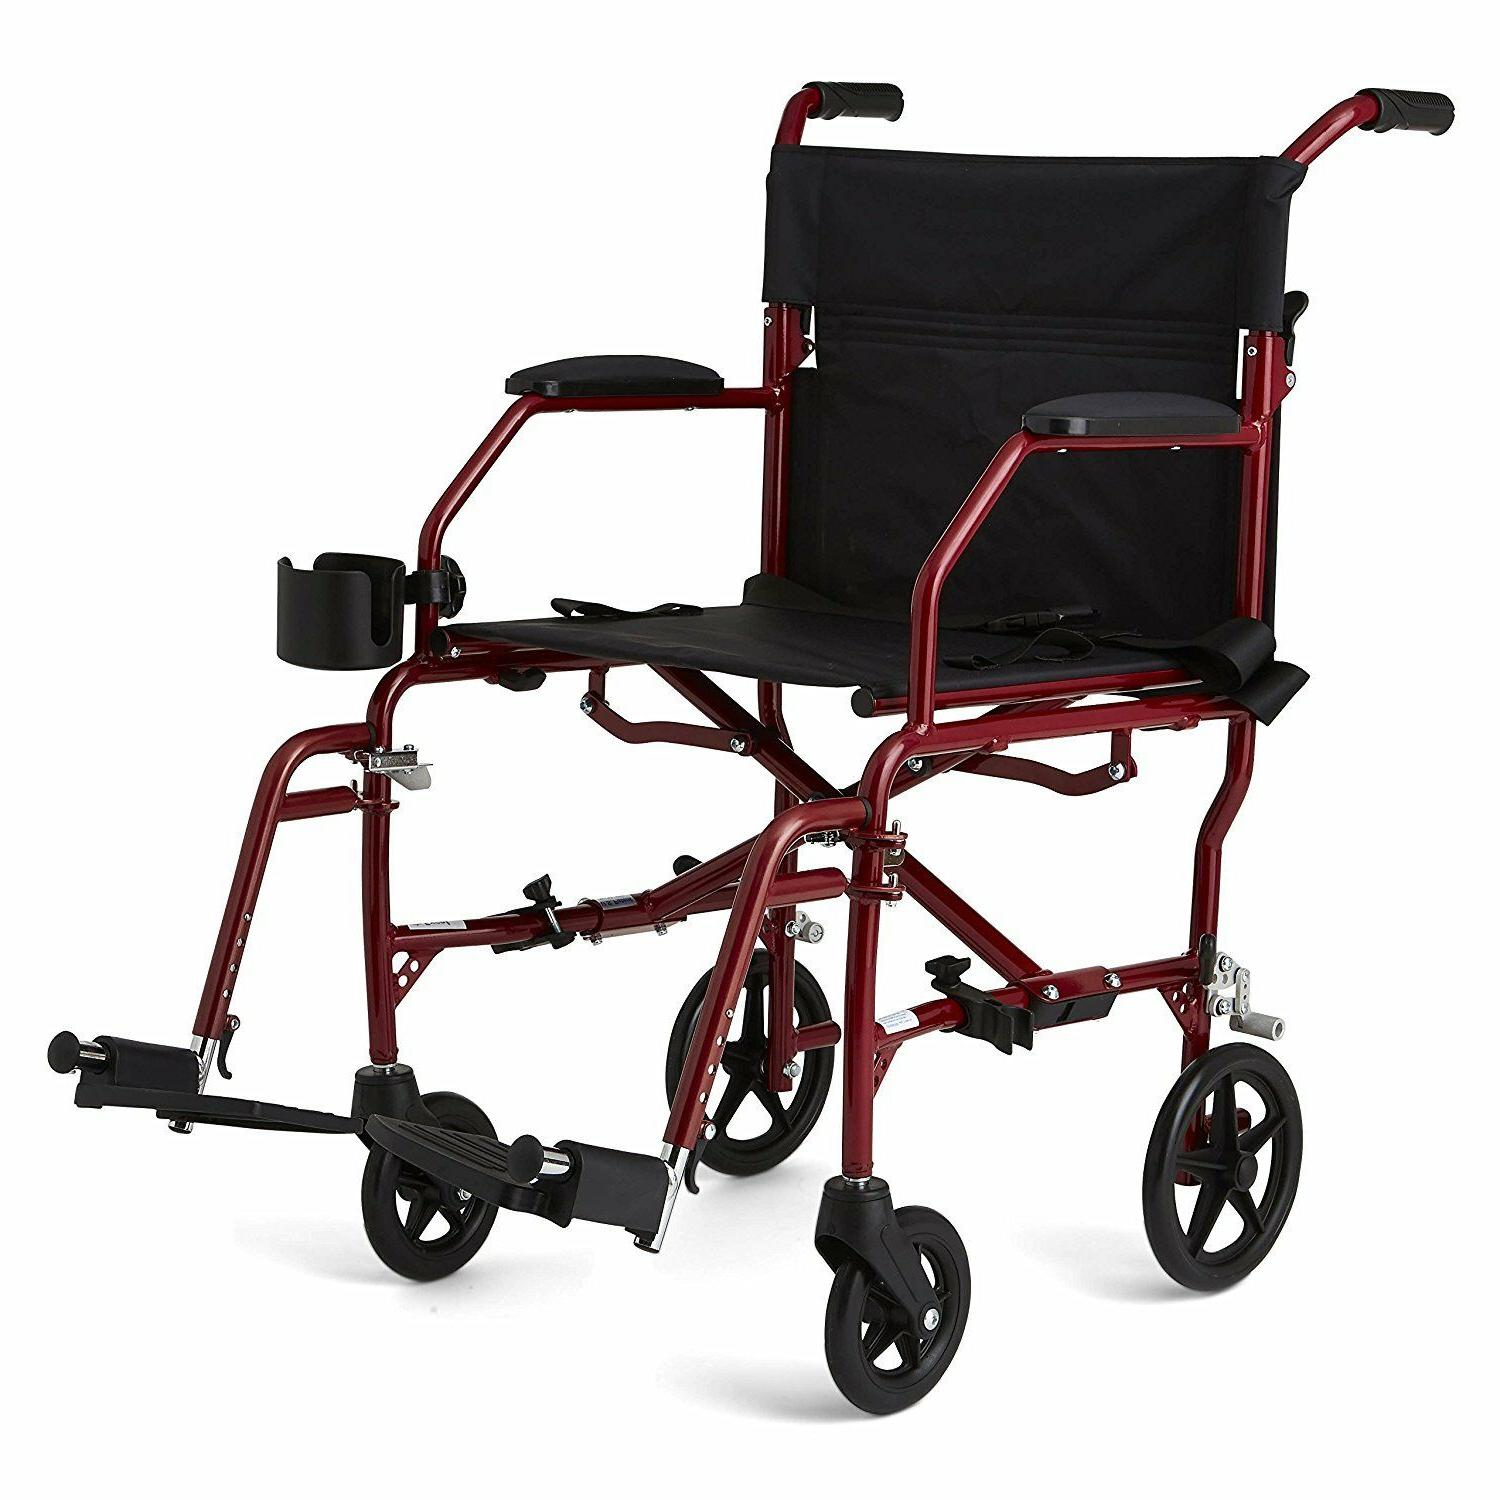 ultralight transport mobility wheelchair 19 wide seat